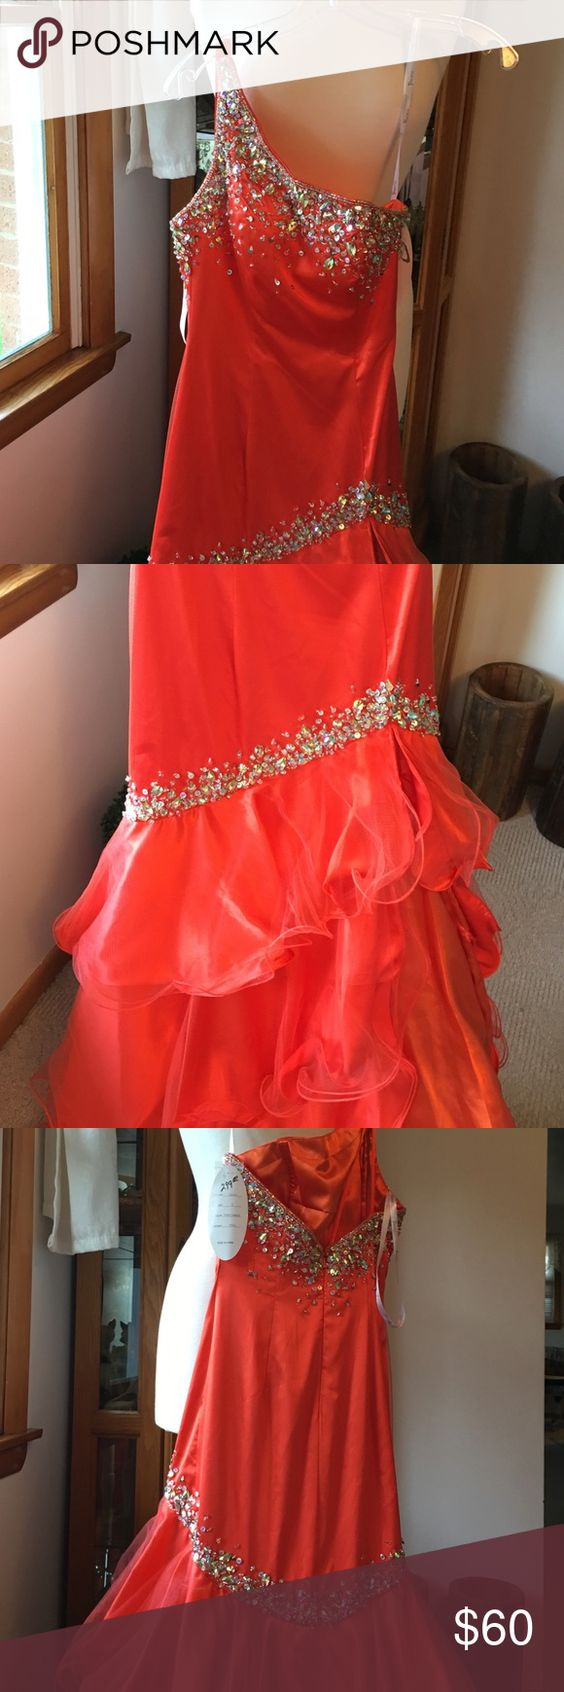 Gown Striking orange gown with silver sequins around the top and below the waist. Ruffles and slit at the bottom. One shoulder. Panoply Dresses Prom